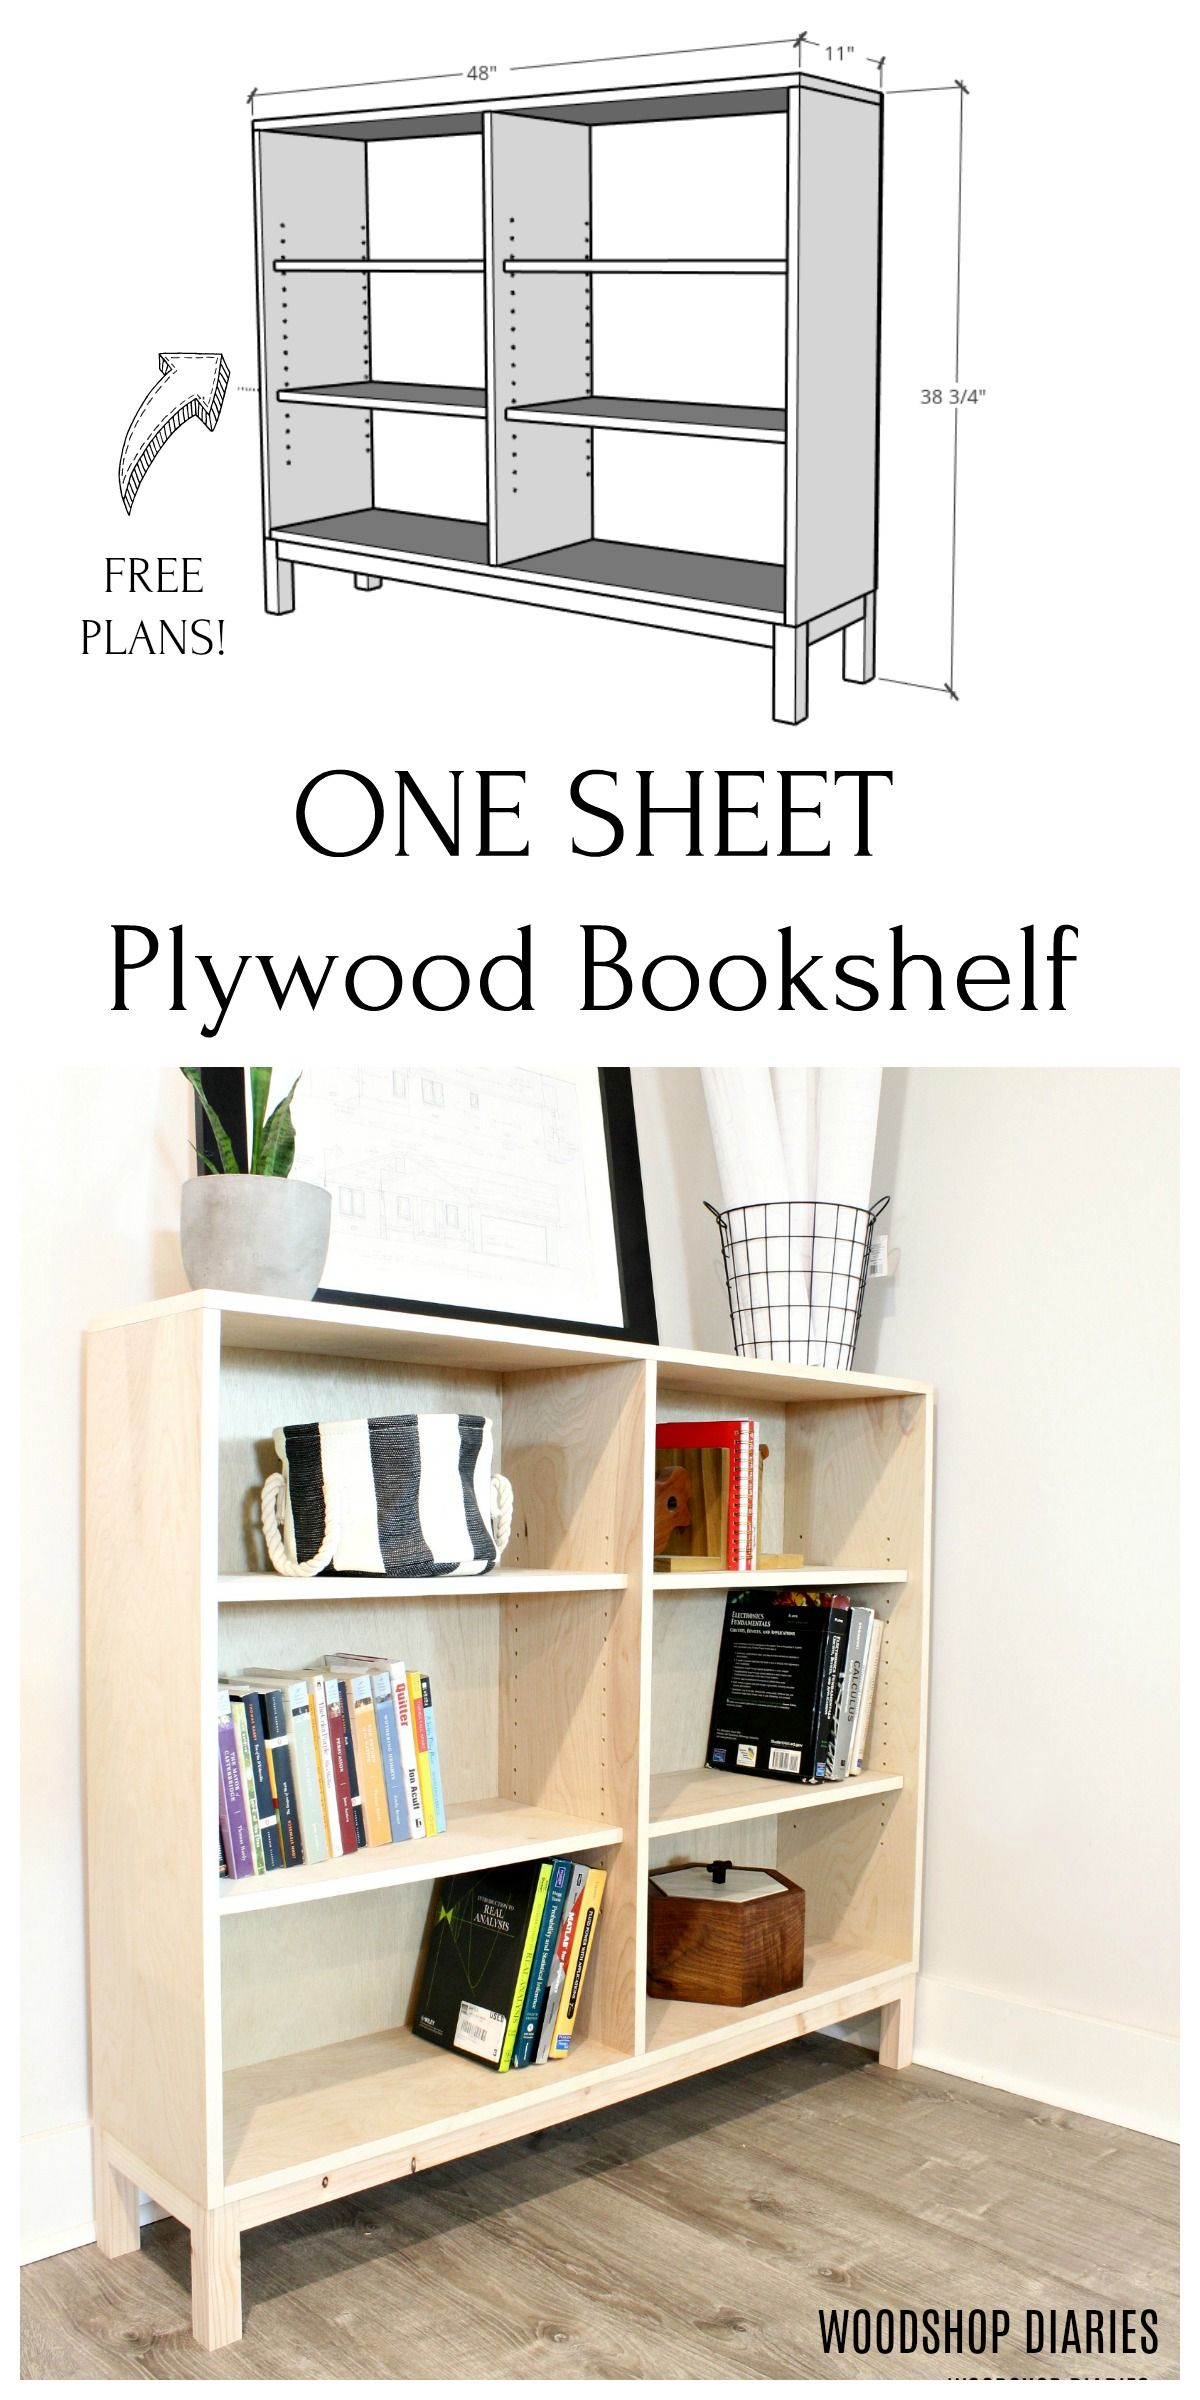 One Sheet Plywood Bookshelf Small woodworking projects